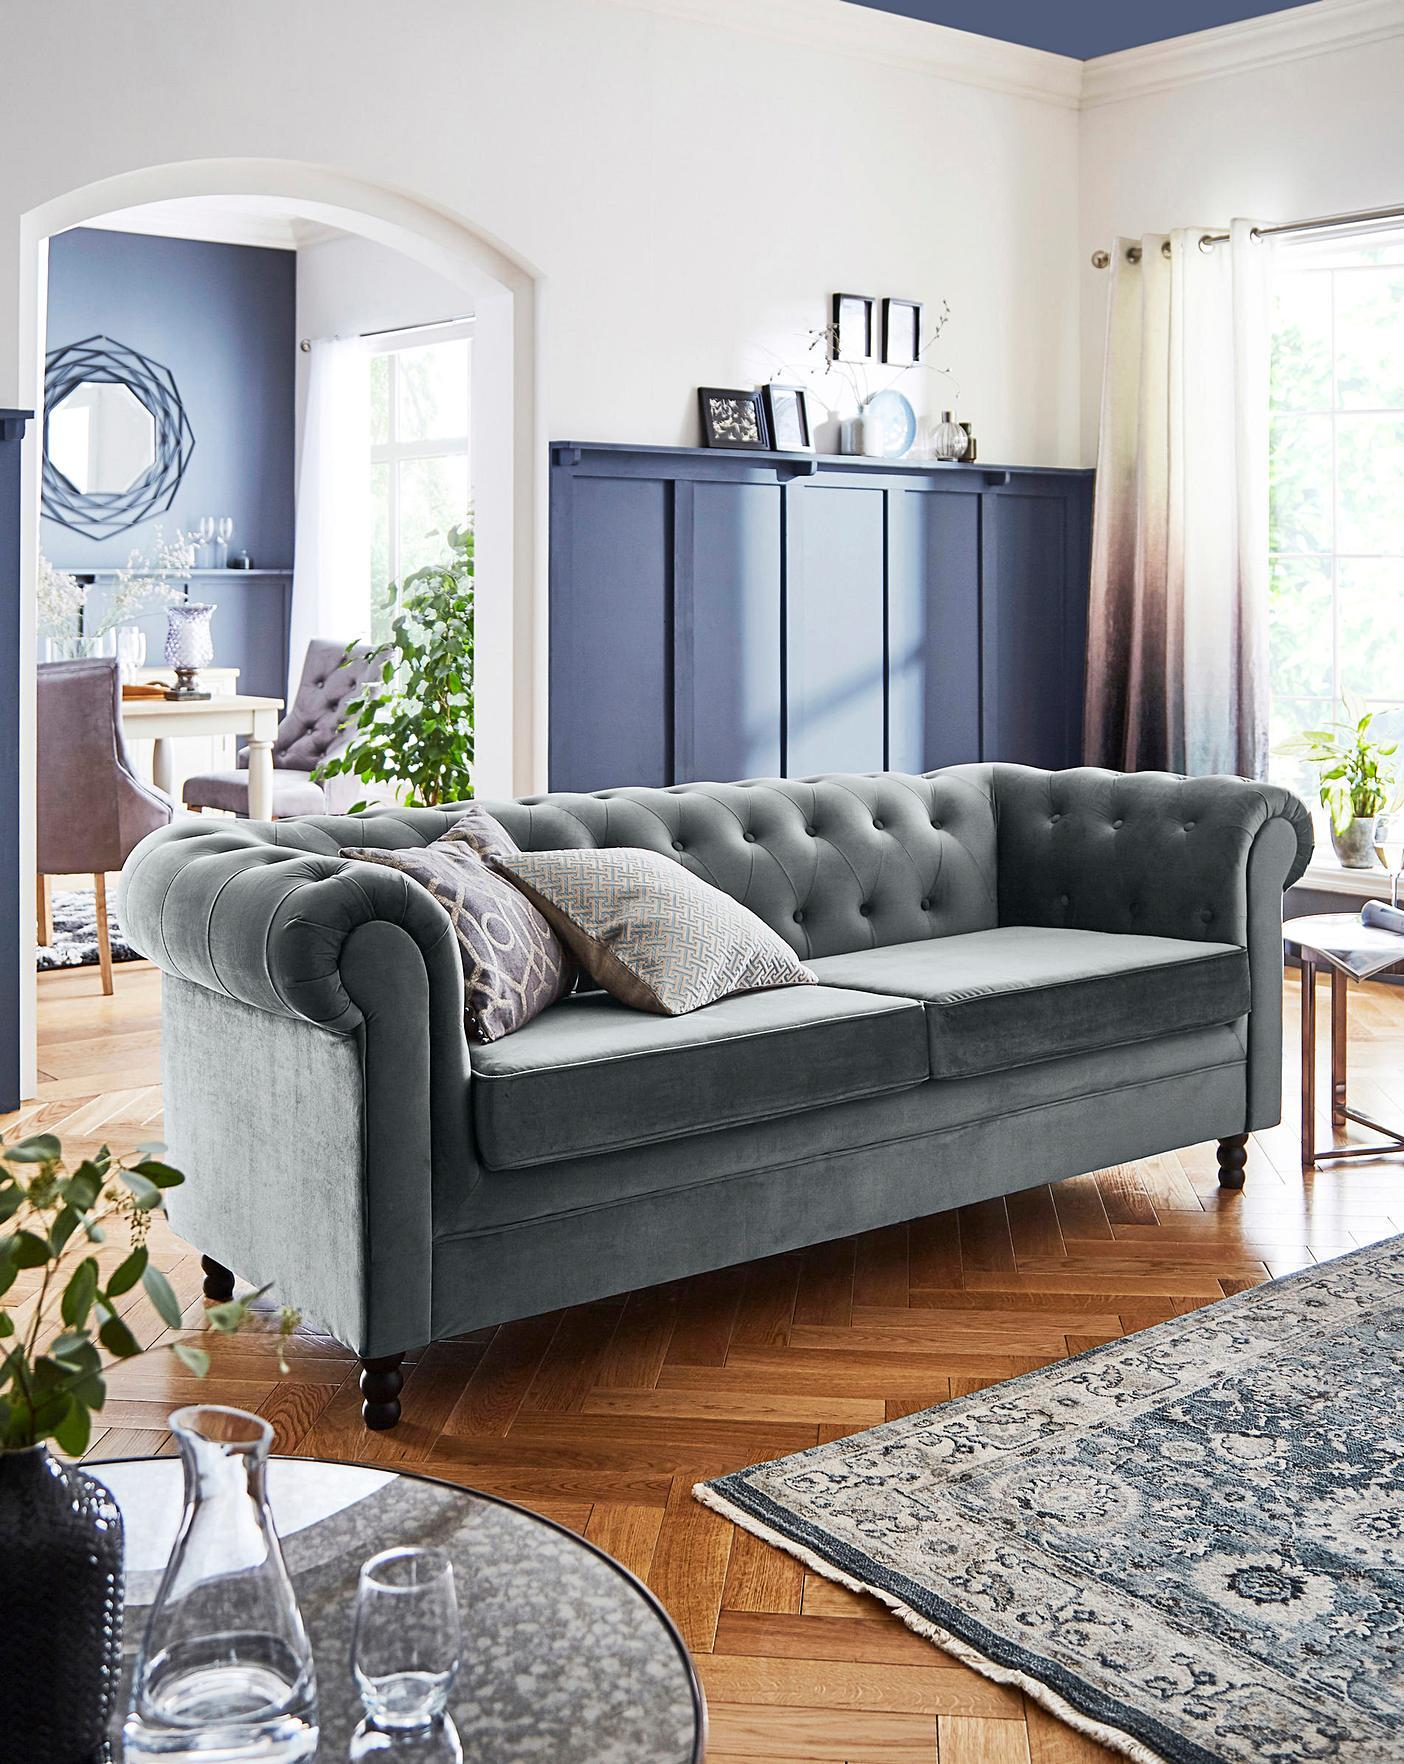 Blue, Grey and Natural Tones Room Decor Inspiration| Blue is a really versatile colour to decorate your home with. But, which colours and tones work well? What kind of accessories work with blue? This post gives you ideas for pulling together an elegant blue colour palette and pieces for your home. Read more: kittyandb.com #blueroom #colourfulhomedecor #bluecolorpalette #blueaesthetic #panelling